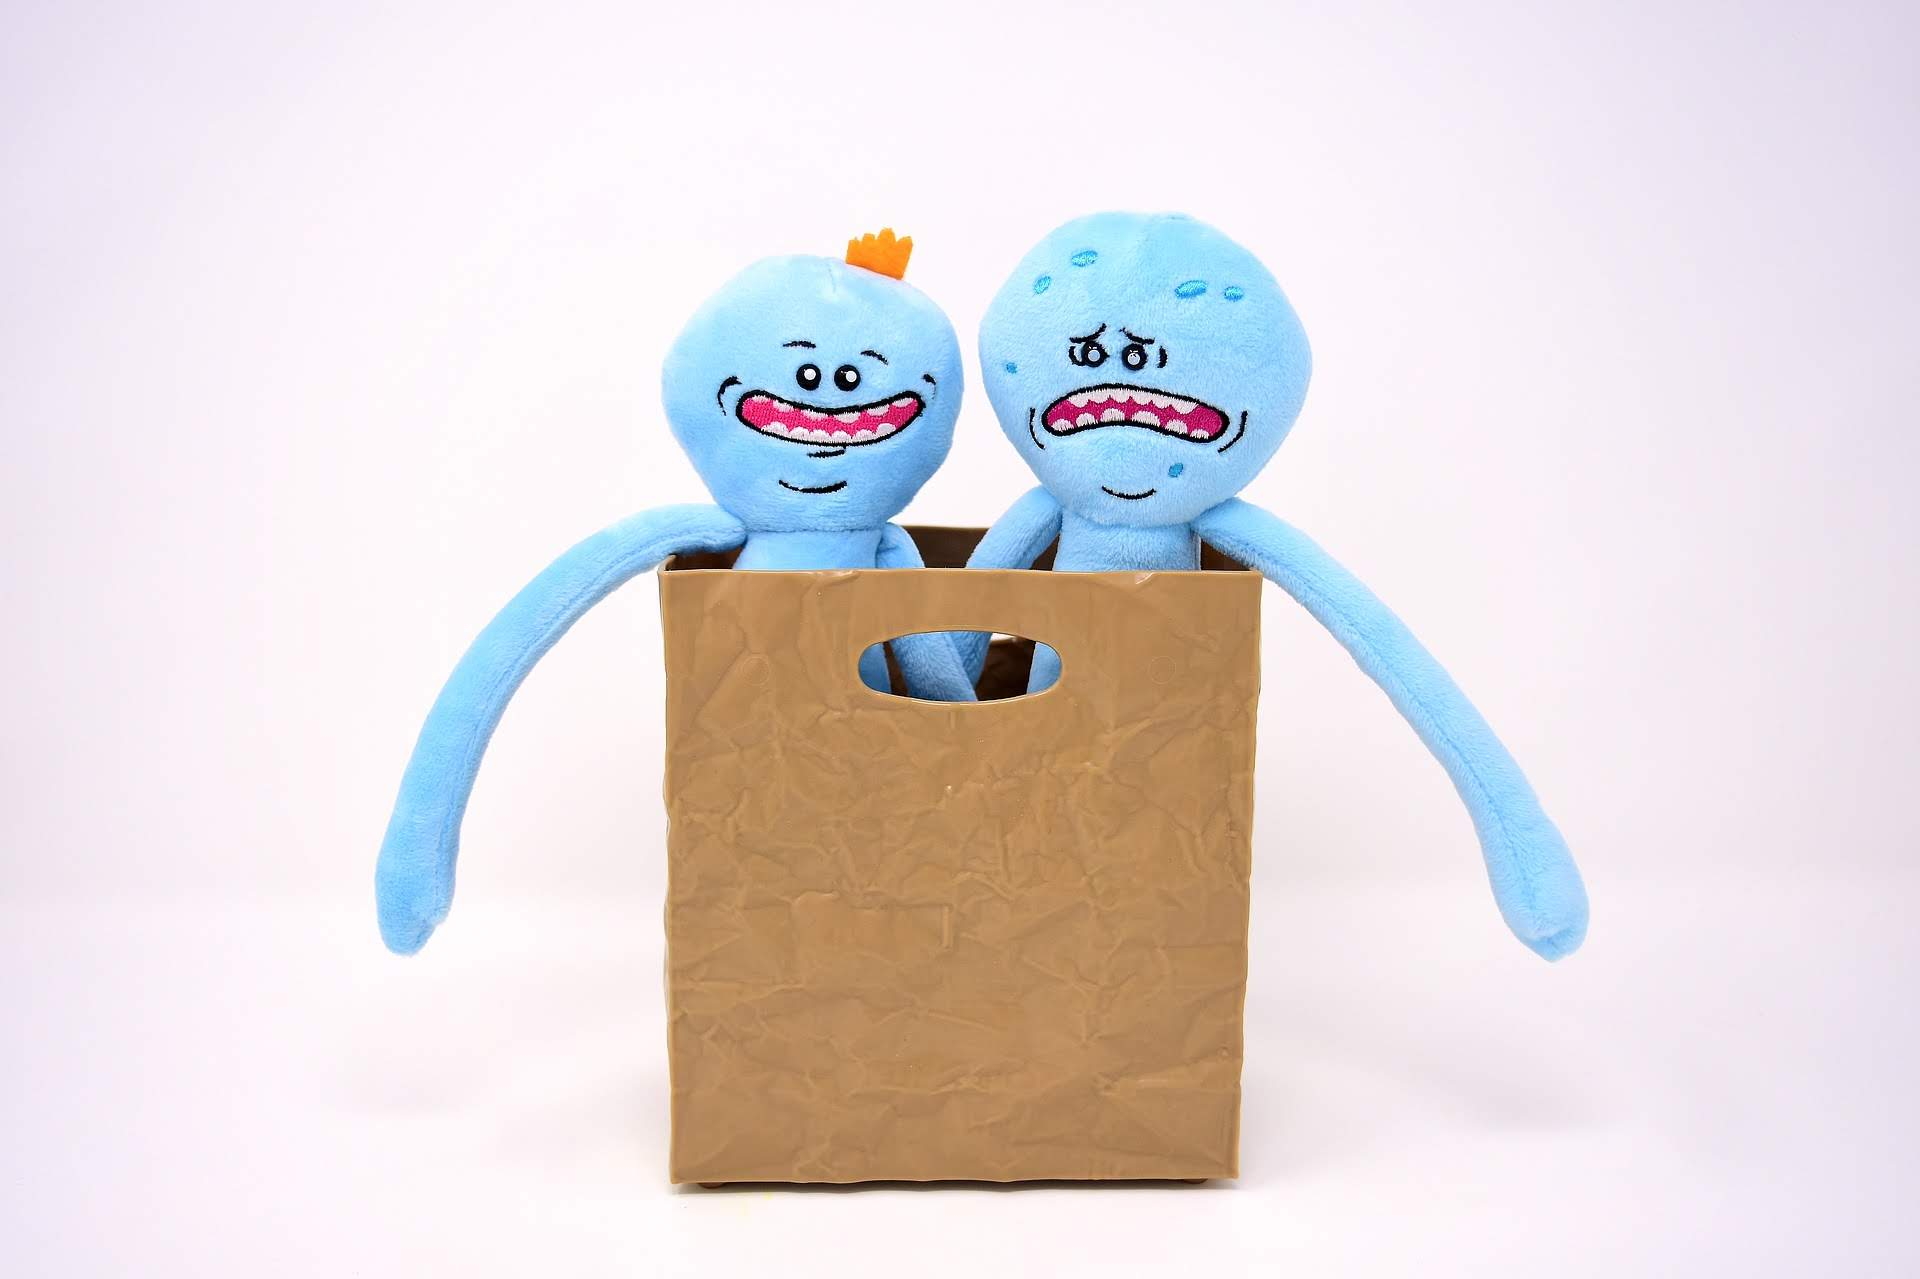 2 blue plush people in a box